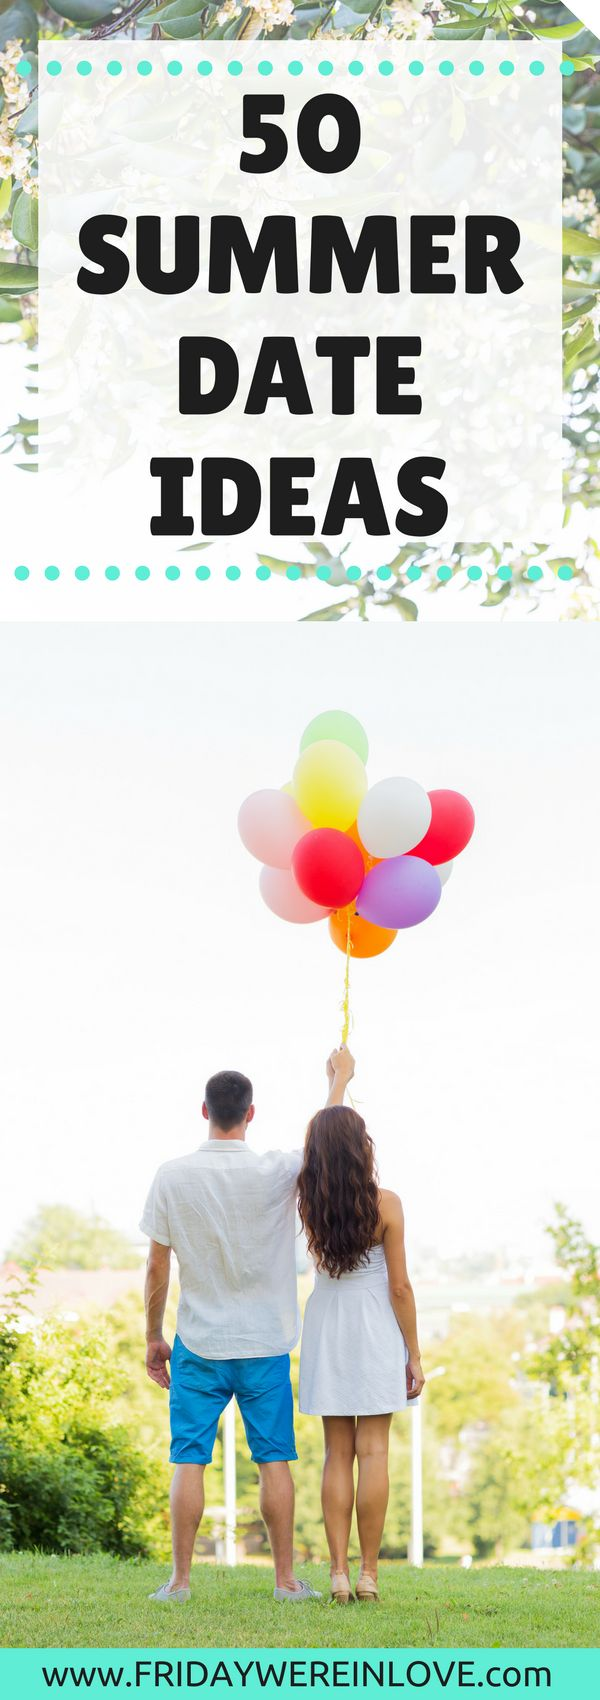 50 Summer Date Ideas   Tons of Free Date Ideas, at-home date ideas, unique date ideas, and fun group date nights perfect for summer time!